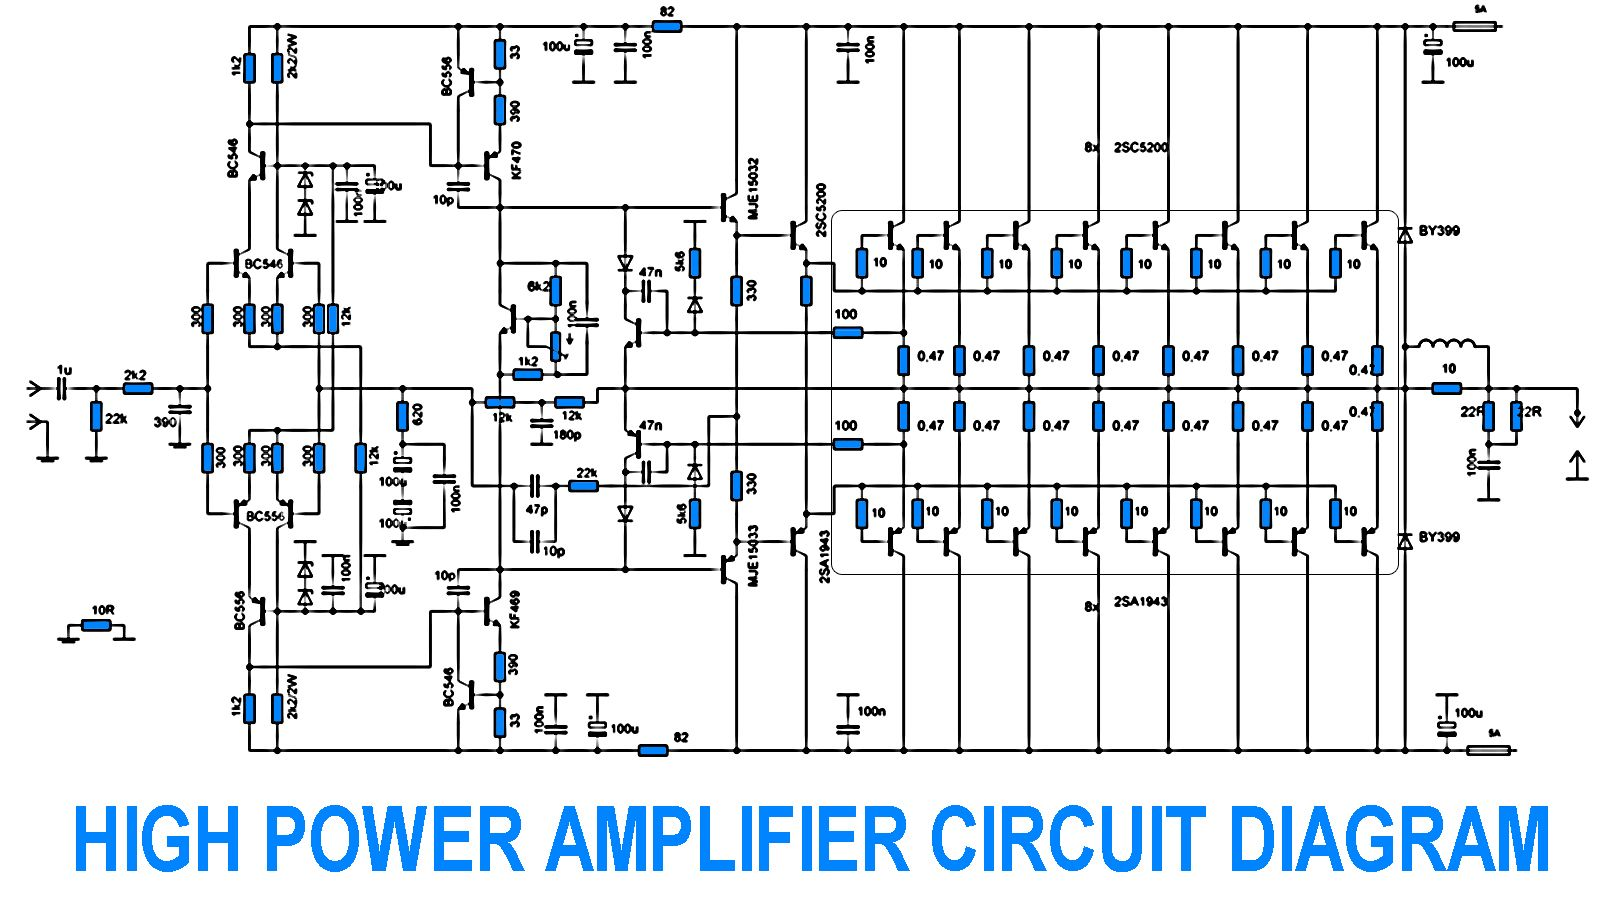 small resolution of 700w power amplifier with 2sc5200 2sa1943